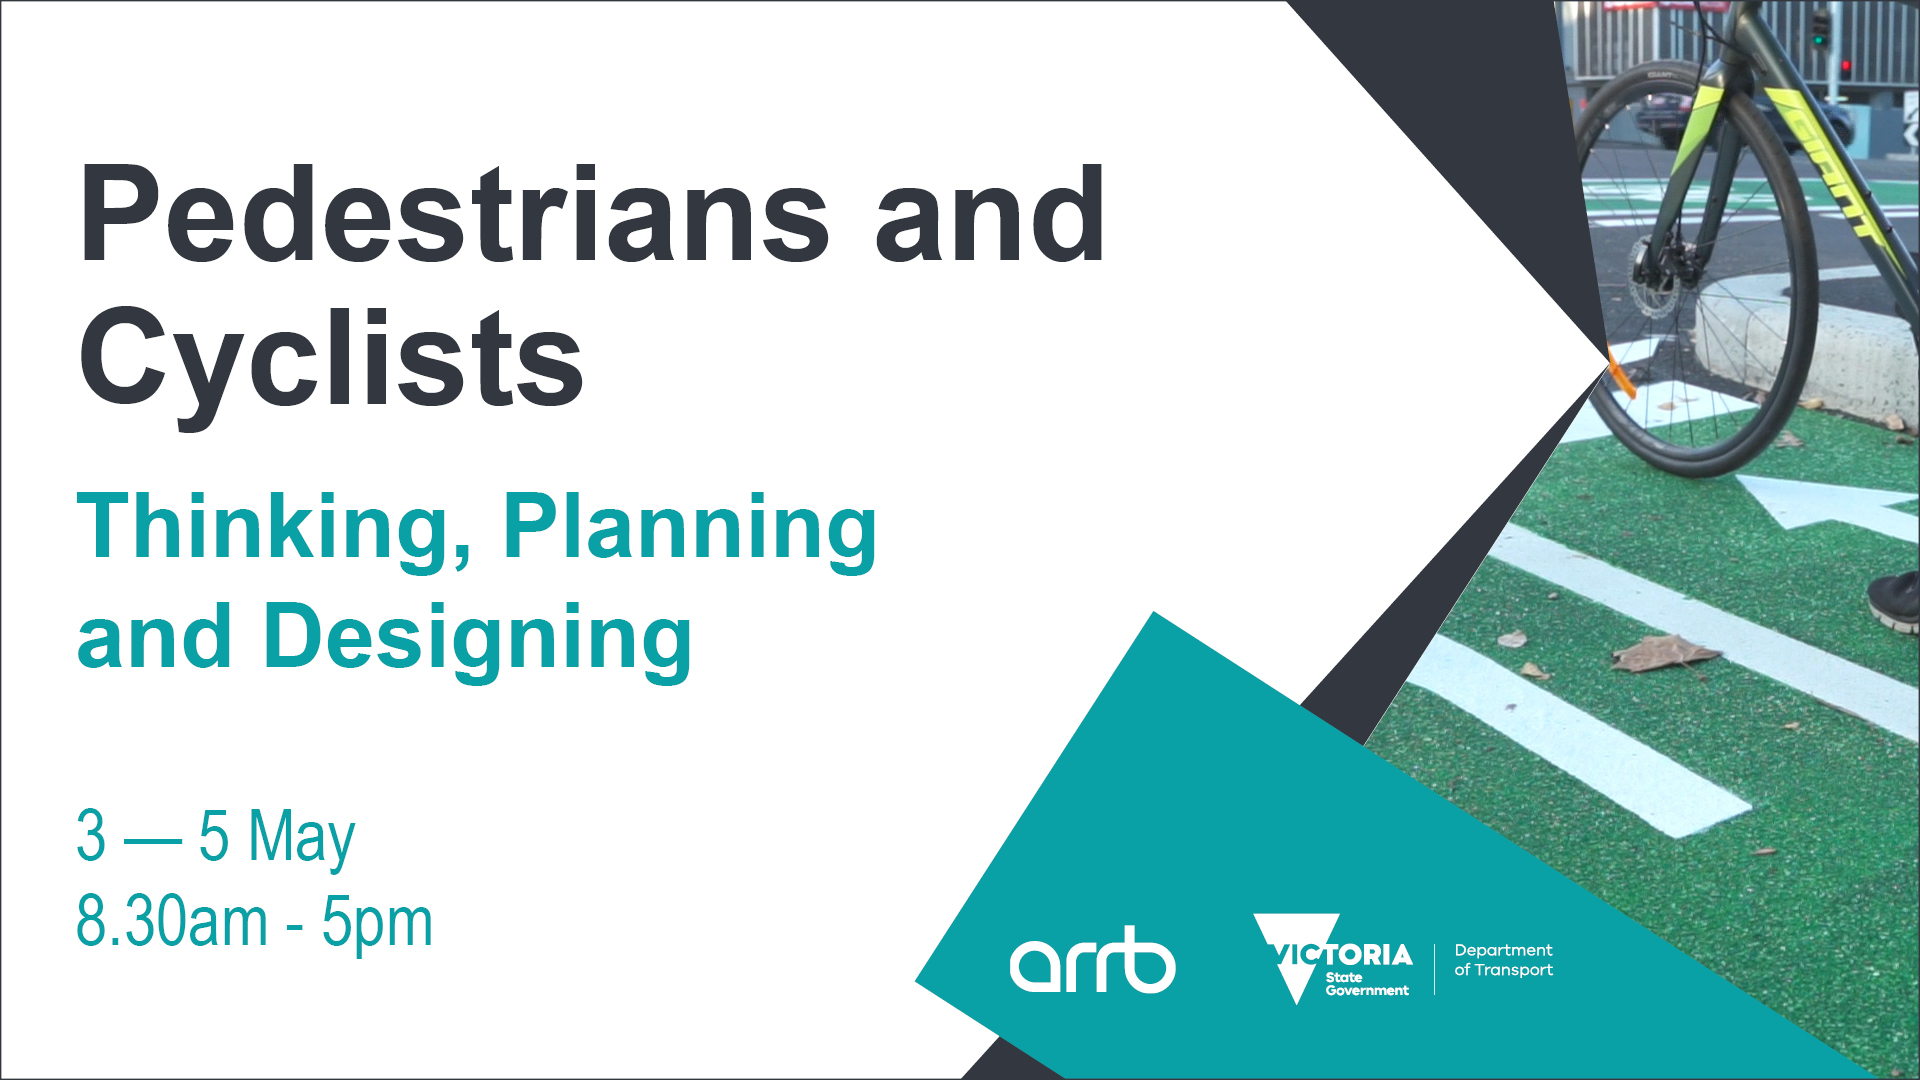 DoT Pedestrians & Cyclists - Thinking, Planning and Designing Workshop May